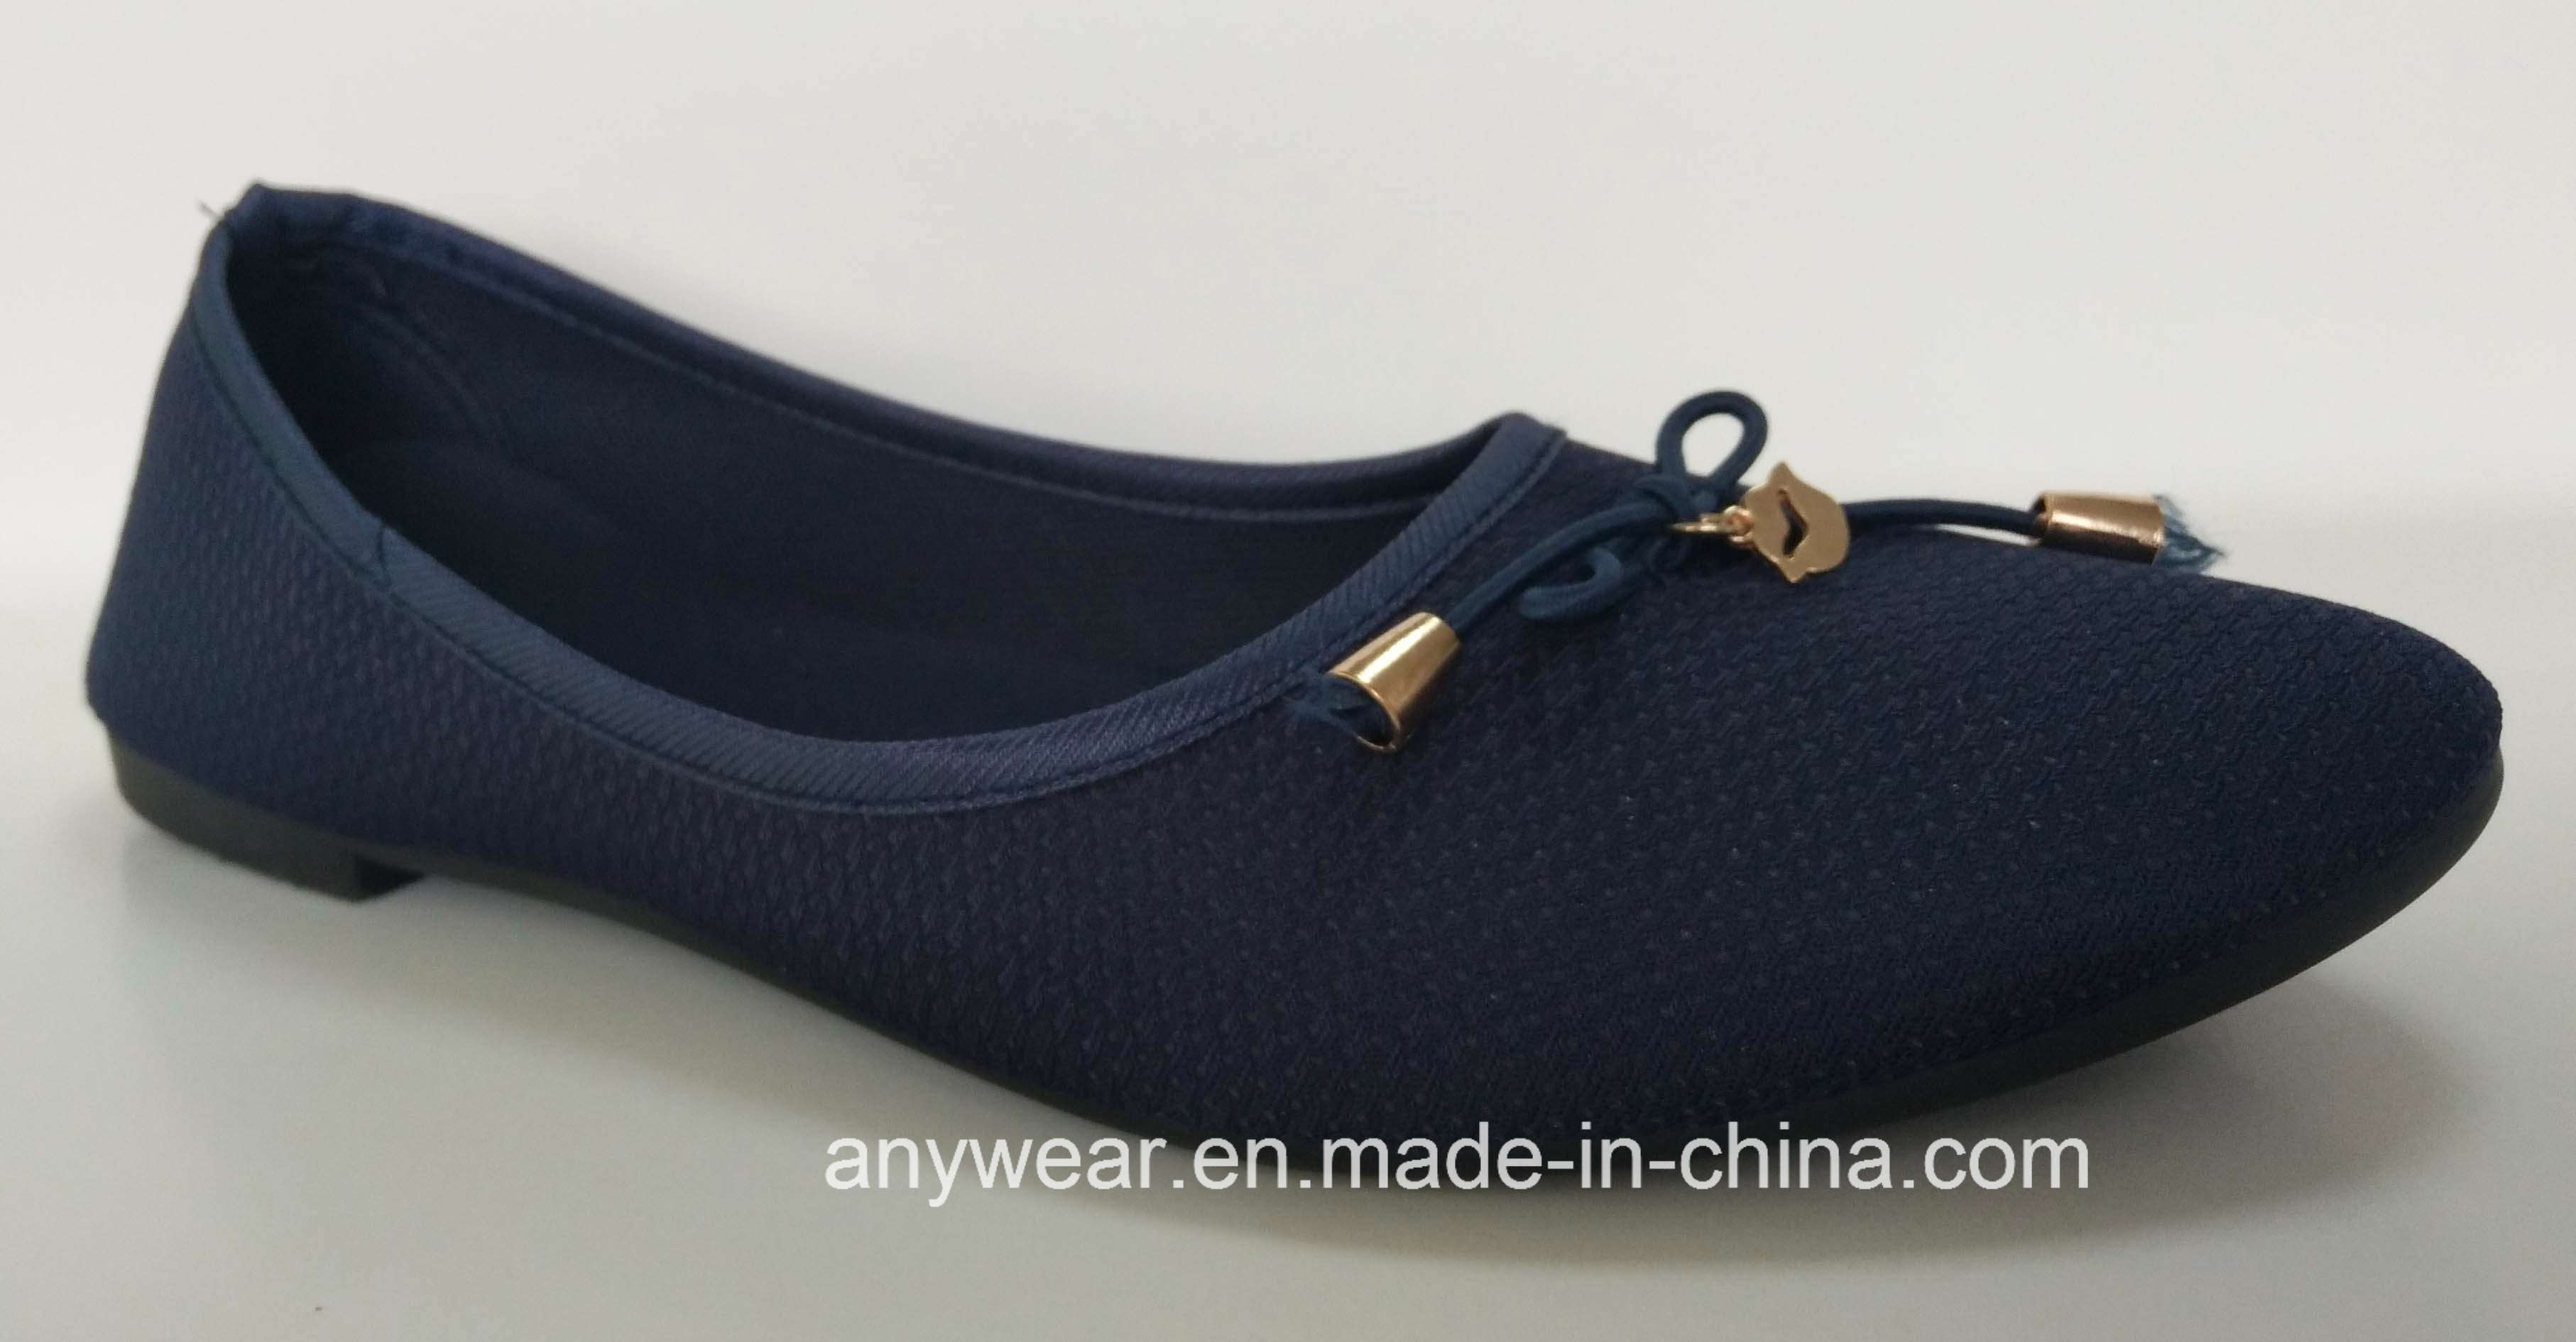 3b80c0e8ae8f China New Fashion Comfort Flat Girl Footwear Wholesale Shoes for Women  (735) - China Shoes